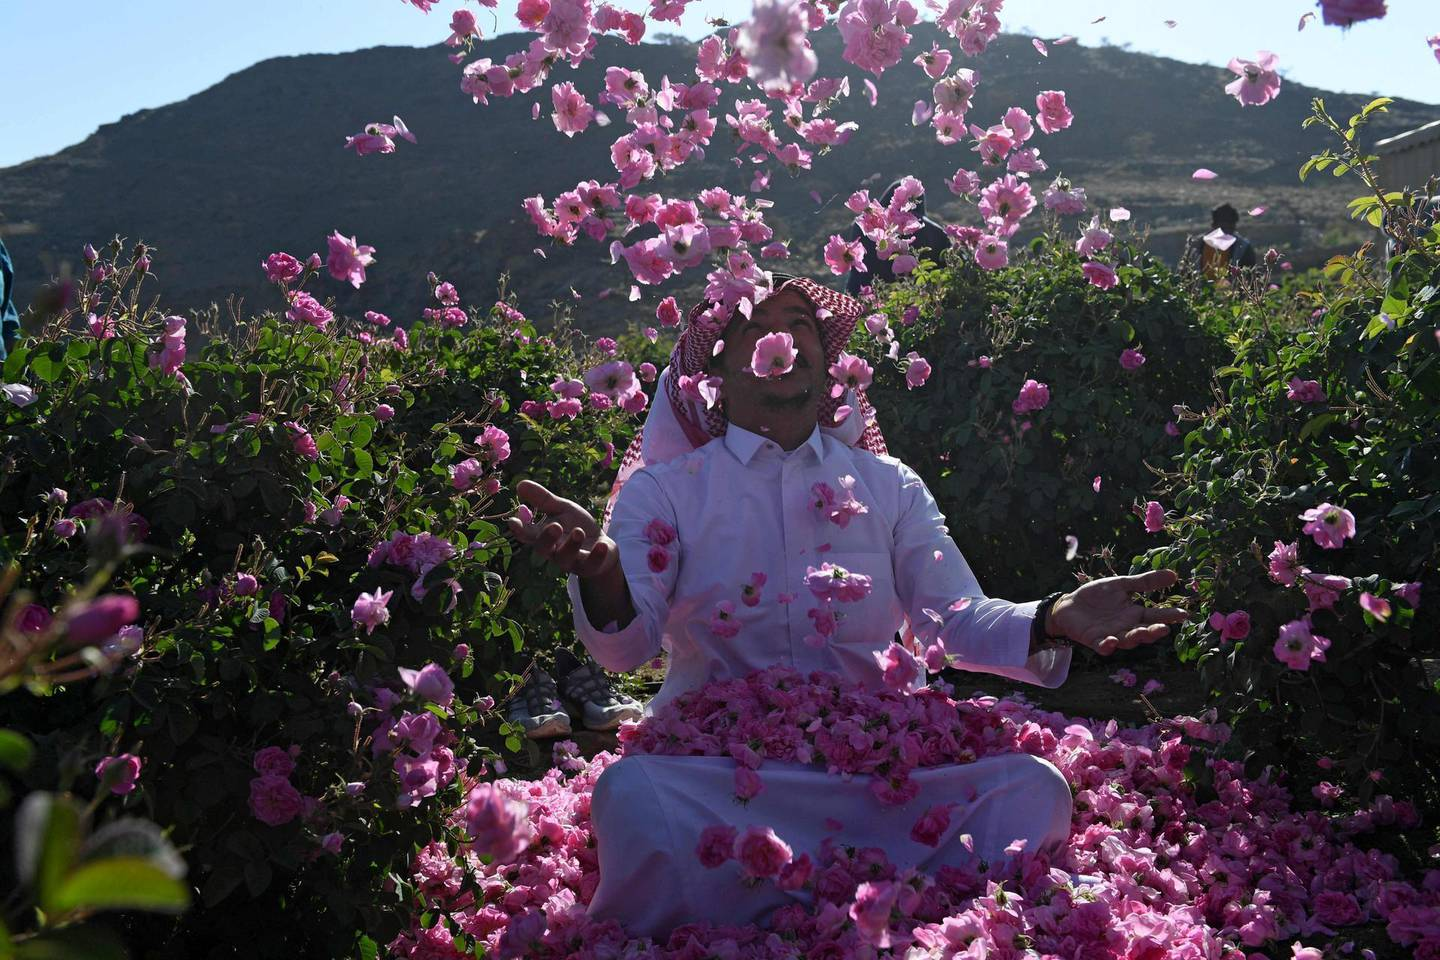 Salman, a member of the Bin Salman family, throws roses into the air at the family's farm in the Saudi city of Taif on March 13, 2021. The family farm is open to visitors and offers a complete rural experience including the viewing of the time-honoured tradition of extracting rose water and oil from the Taif rose, a prized component in the cosmetic, culinary and other industries. It has become synonymous with the city itself, dubbed locally as the City of Roses. / AFP / Amer HILABI